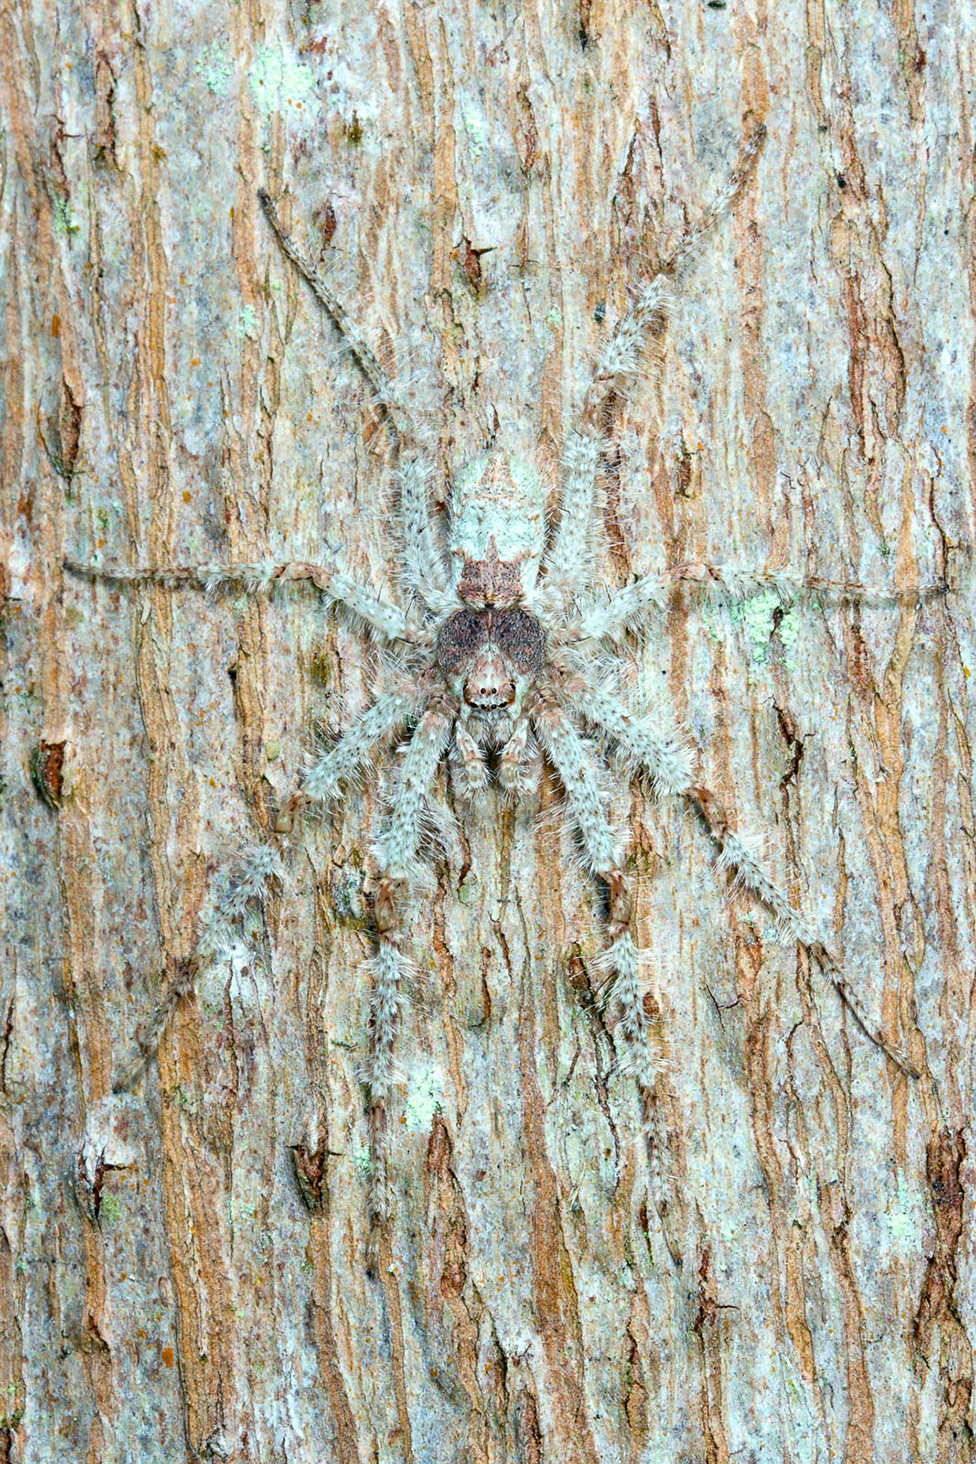 A large spider camouflaged on tree bark